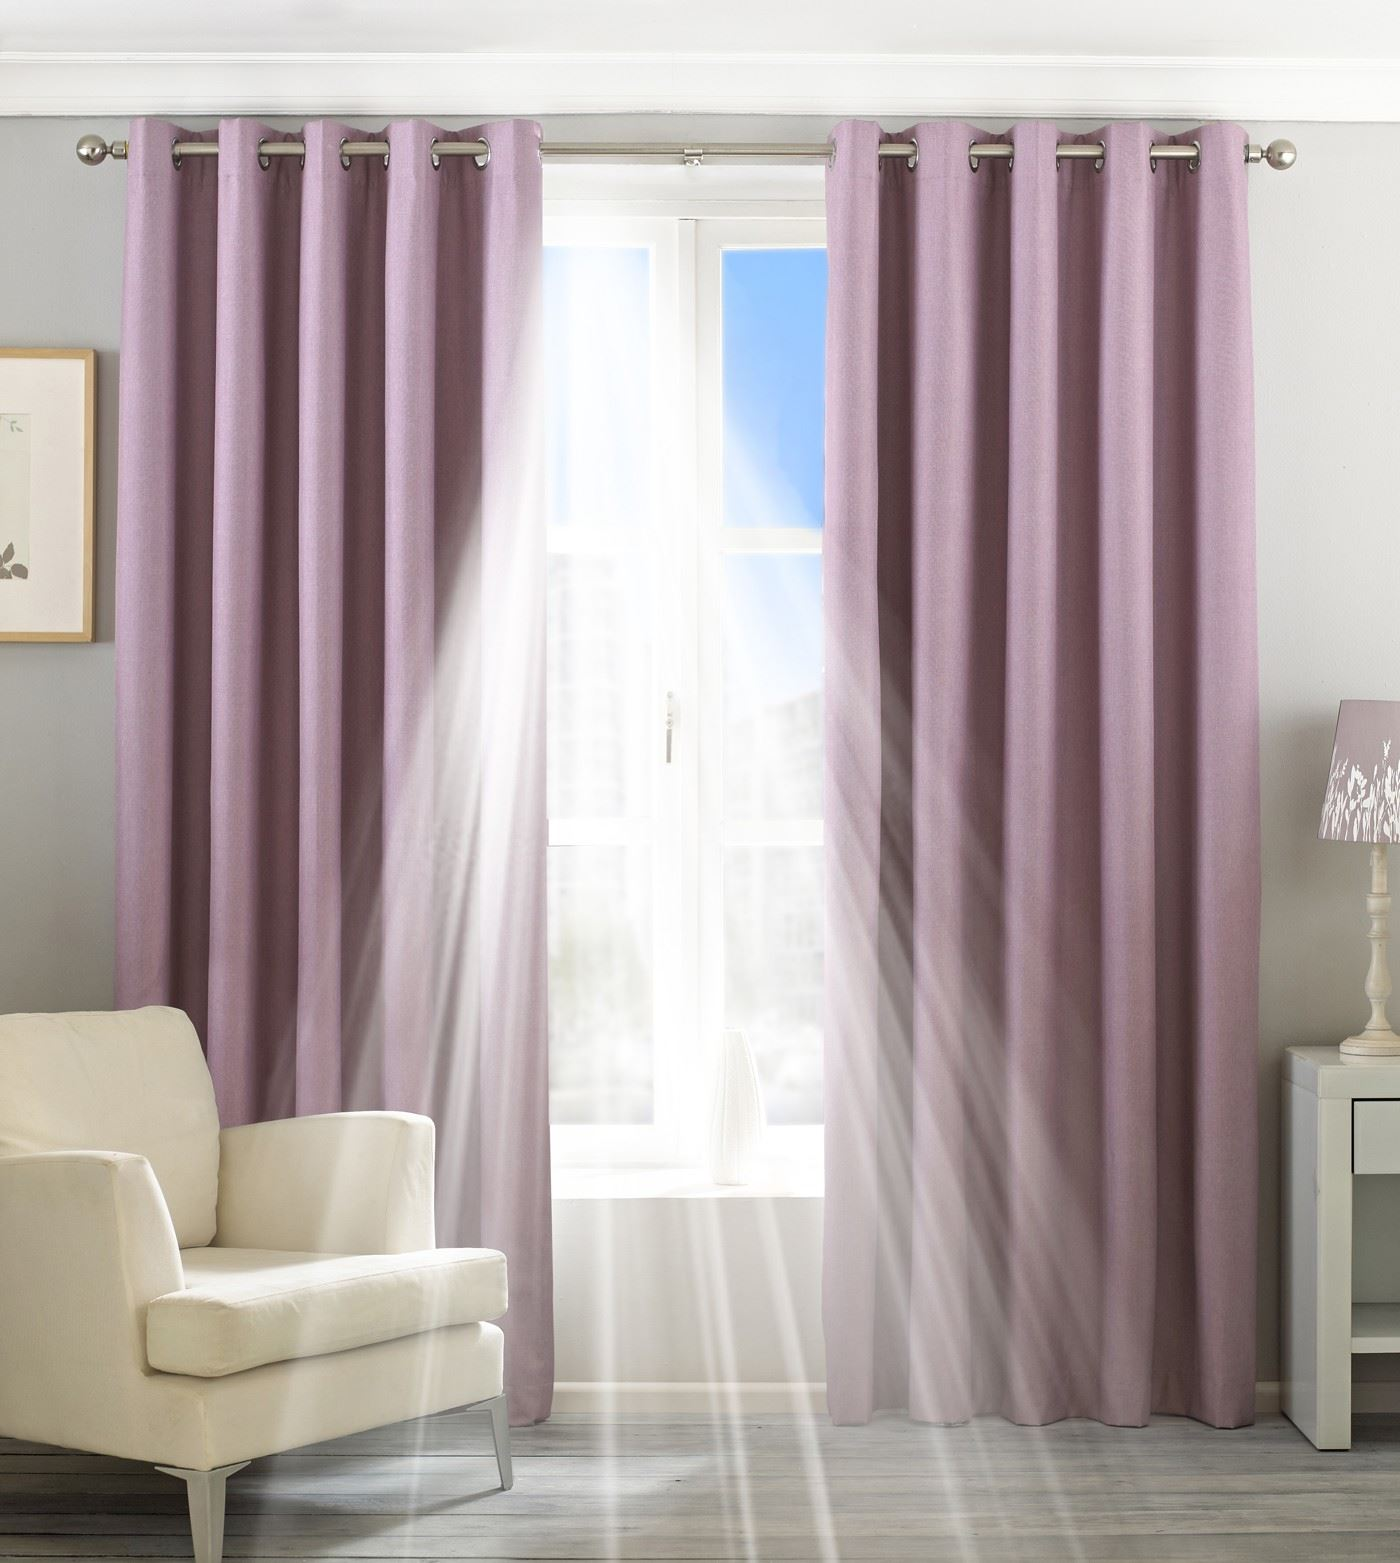 Blackout Curtains 90 X 54 Blackout Eyelet Curtains 90 X 72 Myfamilyliving